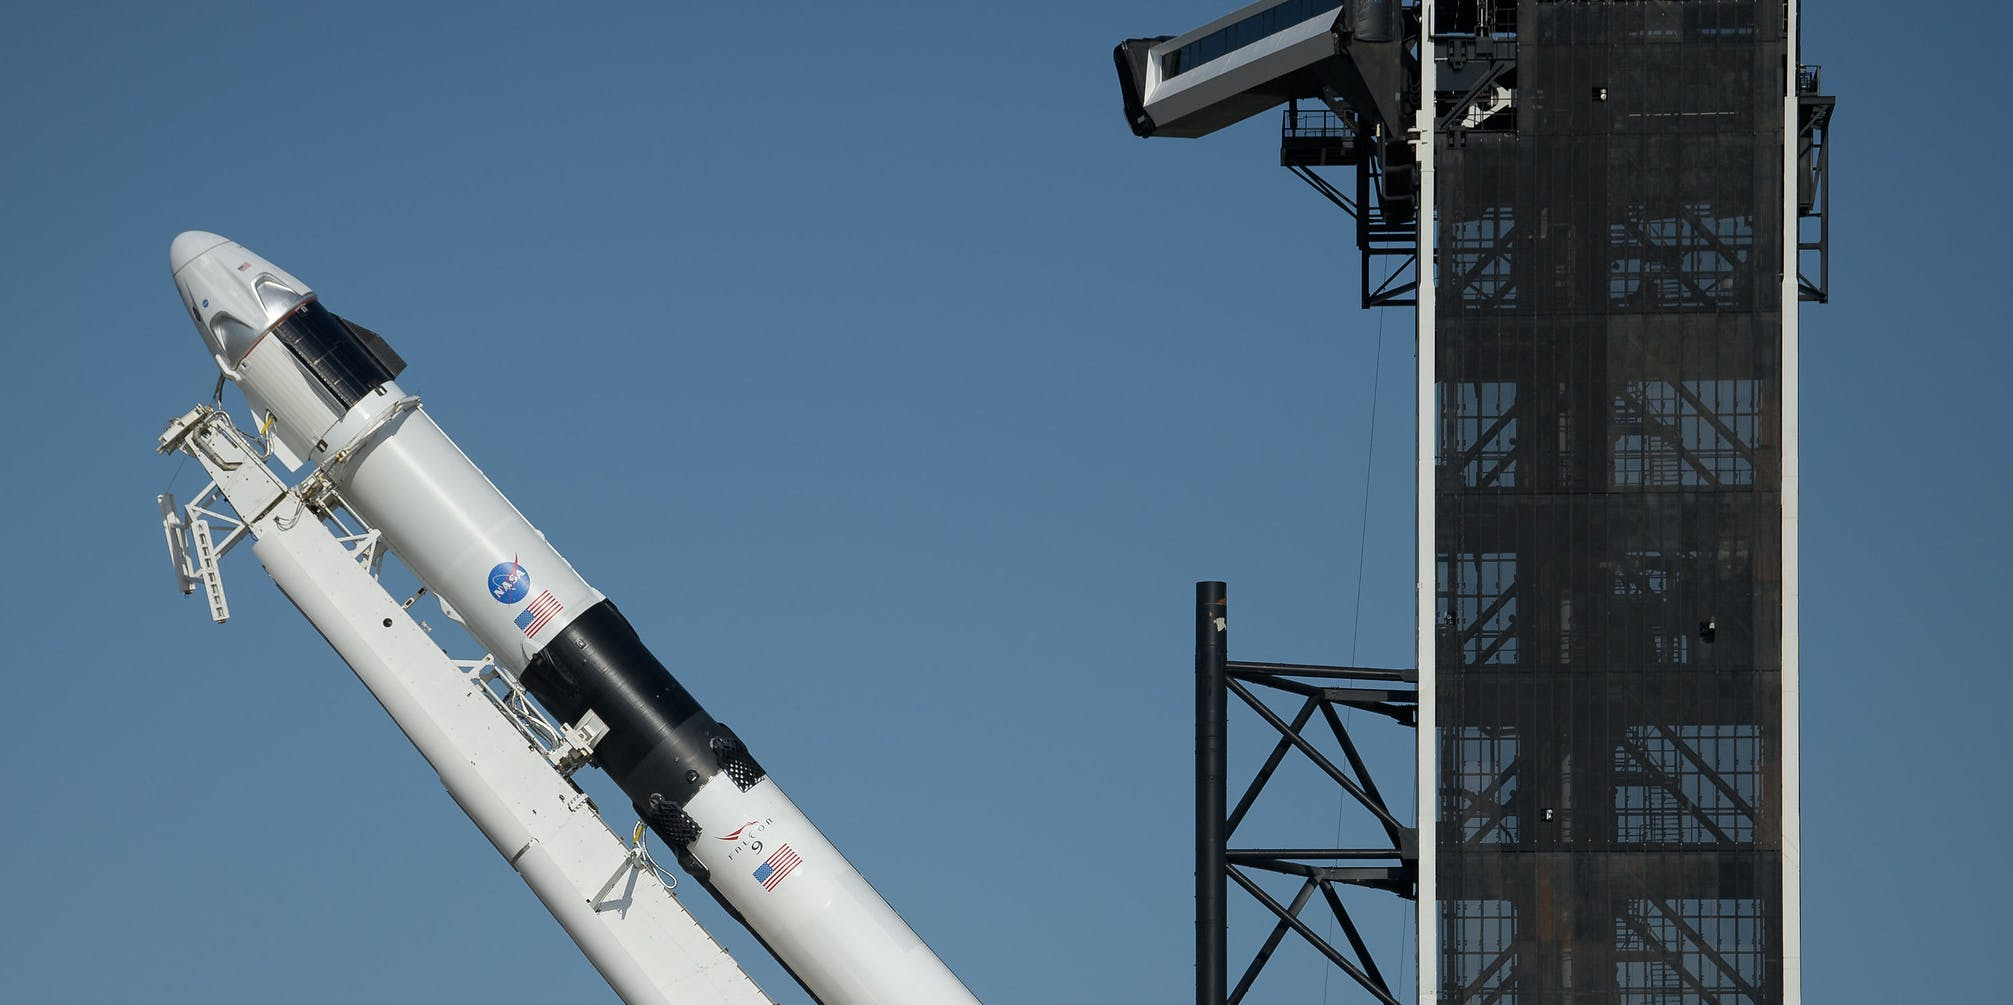 SpaceX reaches for milestone in spaceflight � a private company launches astronauts into orbit - The Conversation US